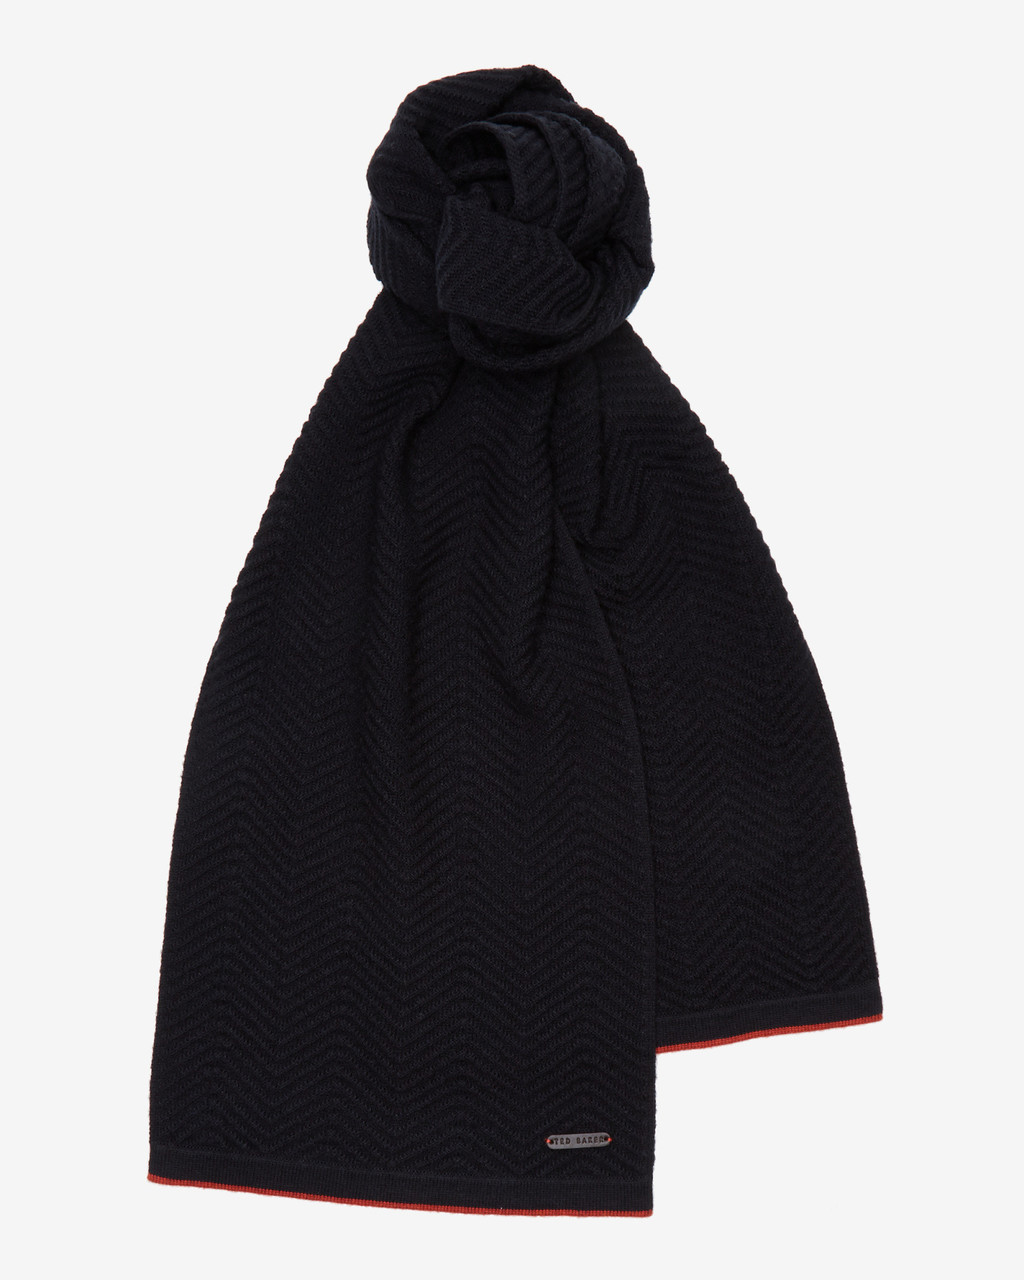 Herringbone Stitch Scarf Navy - predominant colour: black; occasions: casual, creative work; type of pattern: standard; style: regular; size: standard; material: knits; pattern: plain; wardrobe: basic; season: a/w 2016